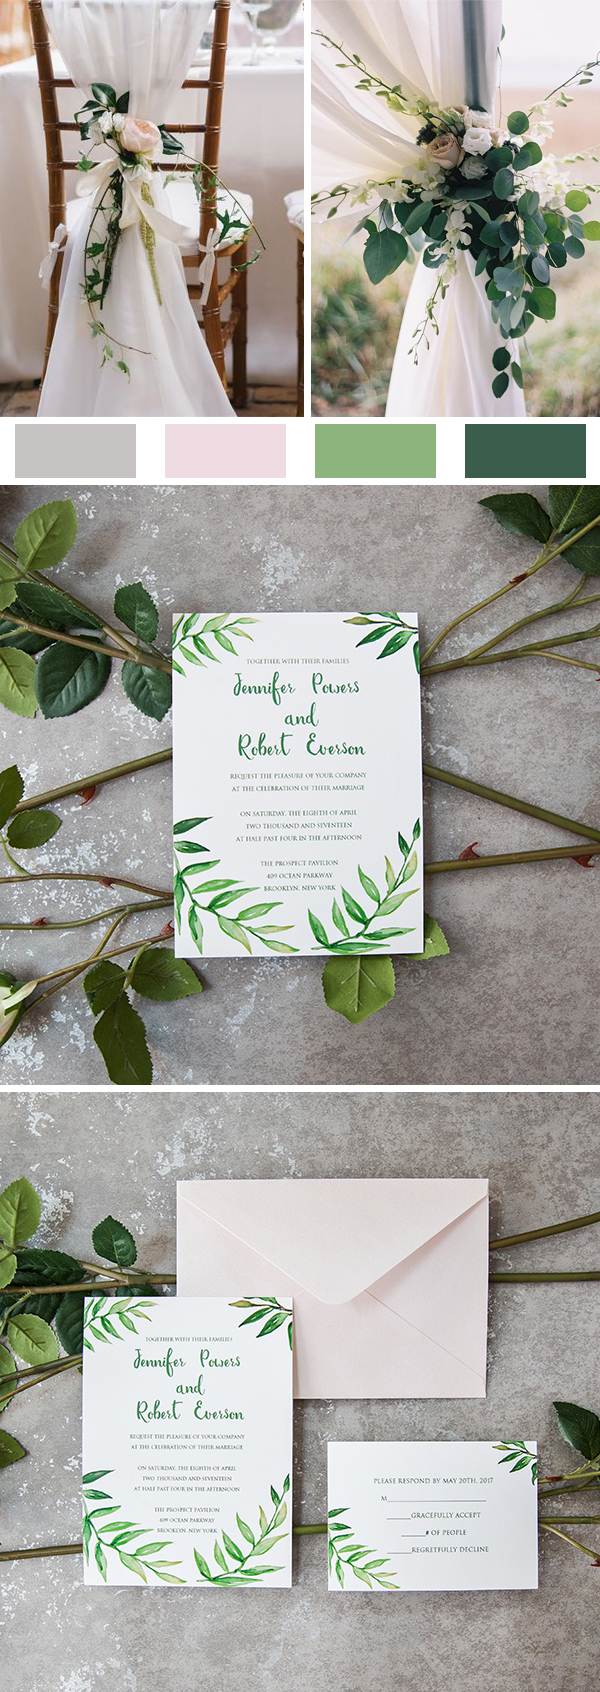 Bohemian Inspired Greenery Botanical Watercolor Wedding Invitations EWI420